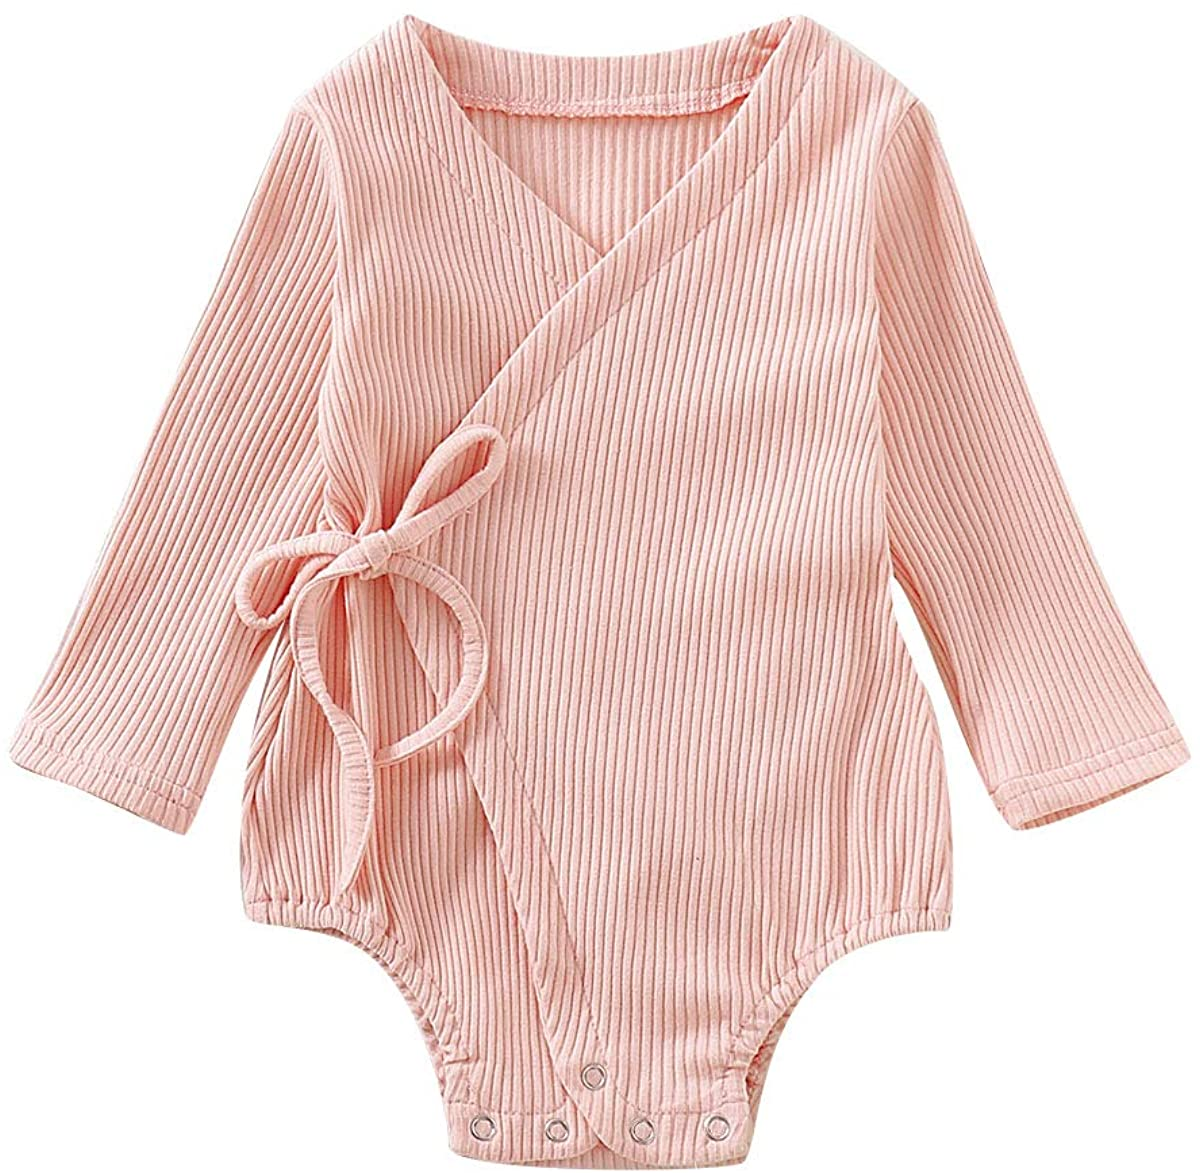 YOUNGER TREE Newborn Infant Baby Girl Romper Linen Cotton Kimono Bodysuit Sleeveless Jumpsuit Summer Clothes (12-18 Months, Pink # A)